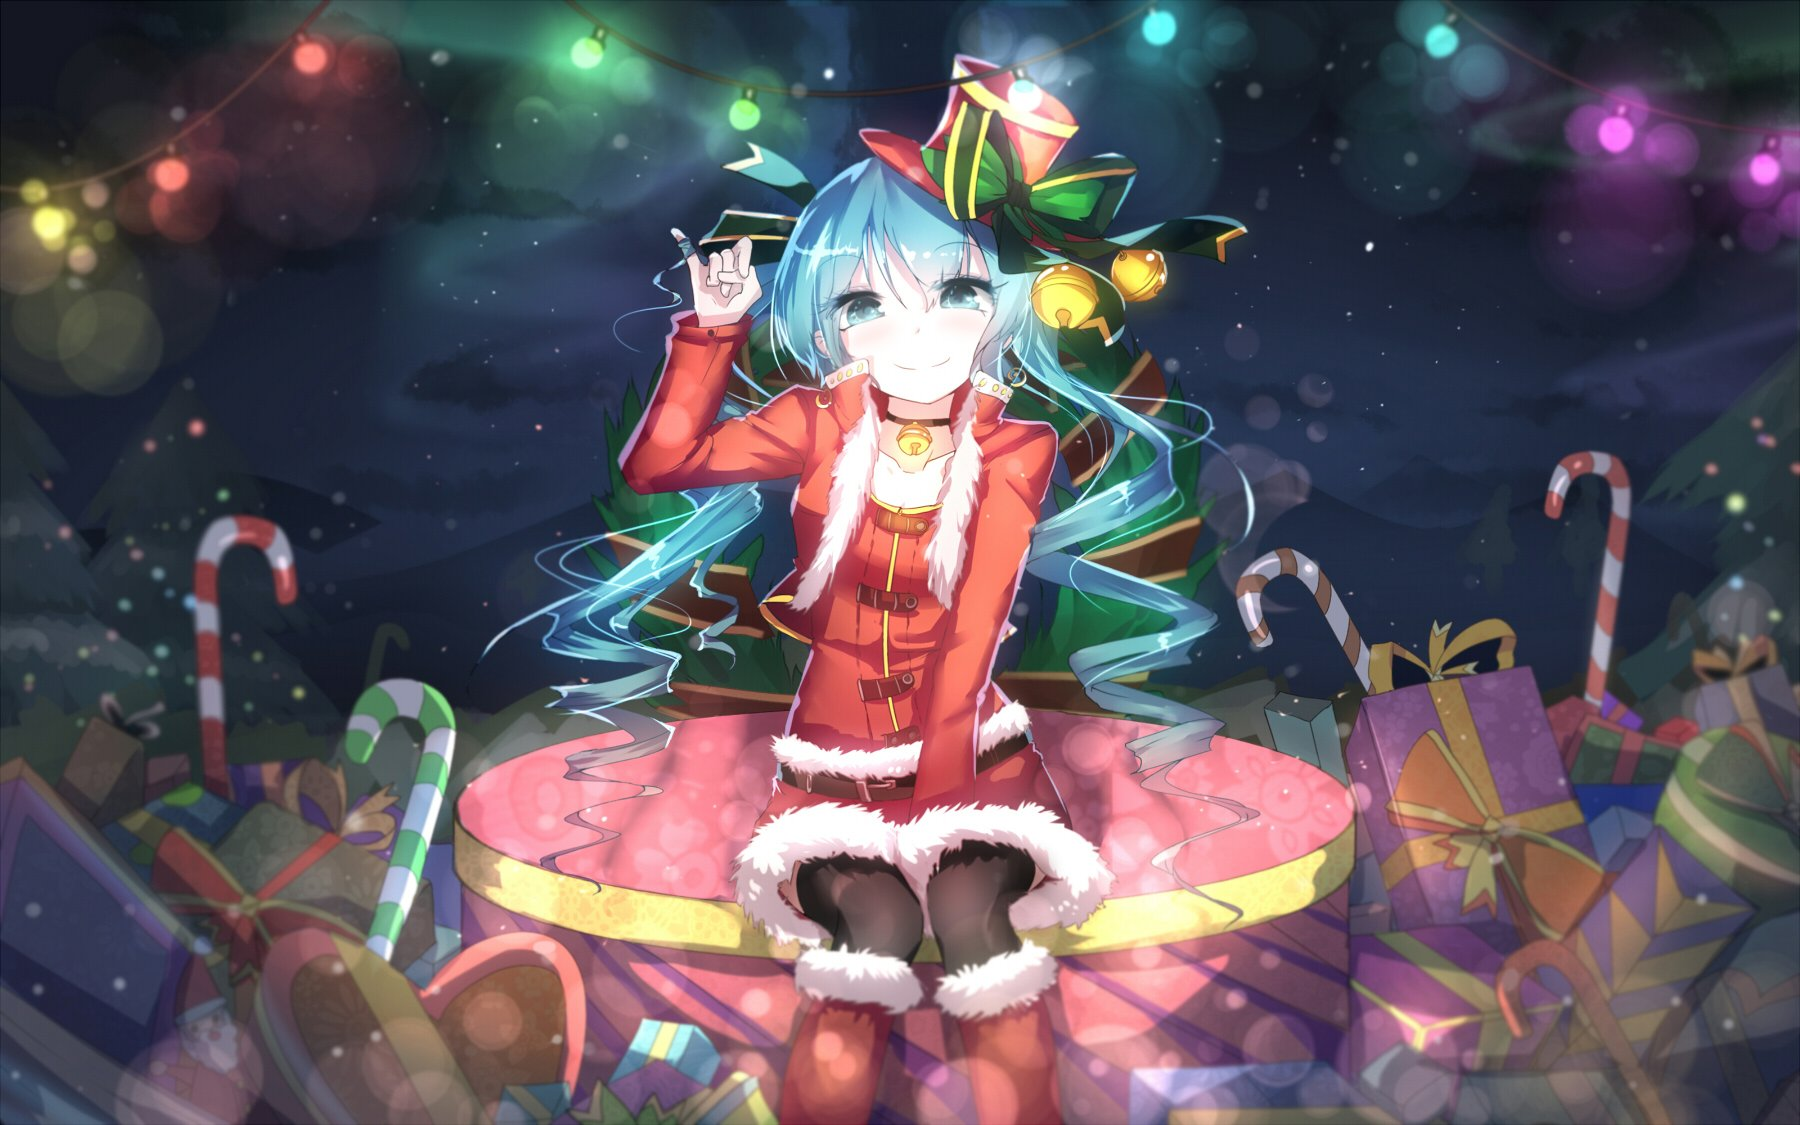 Christmas hatsune miku vocaloid wallpaper | 1800x1125 | 565392 ...